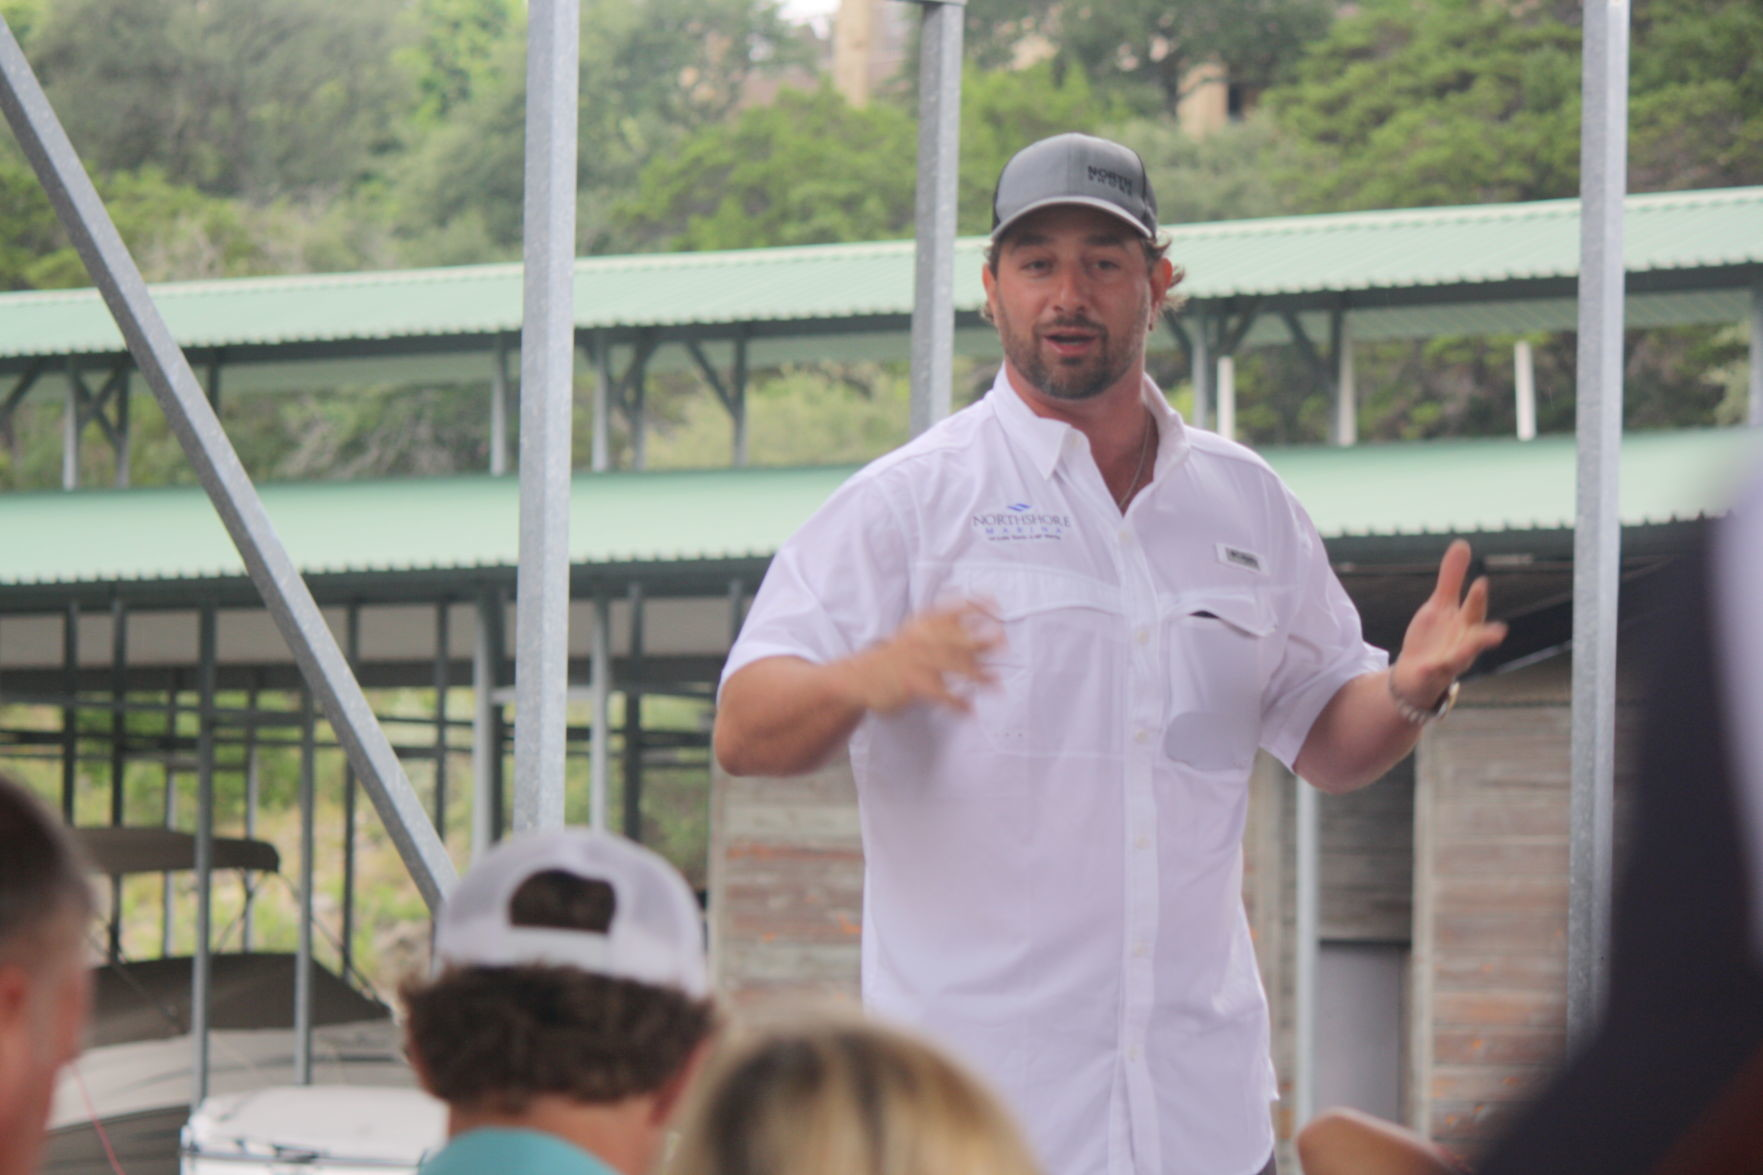 Austin Cameron speaks at the ribbon cutting for NorthShore Marina's addition of 71 new boat slips, Saturday, June 24.